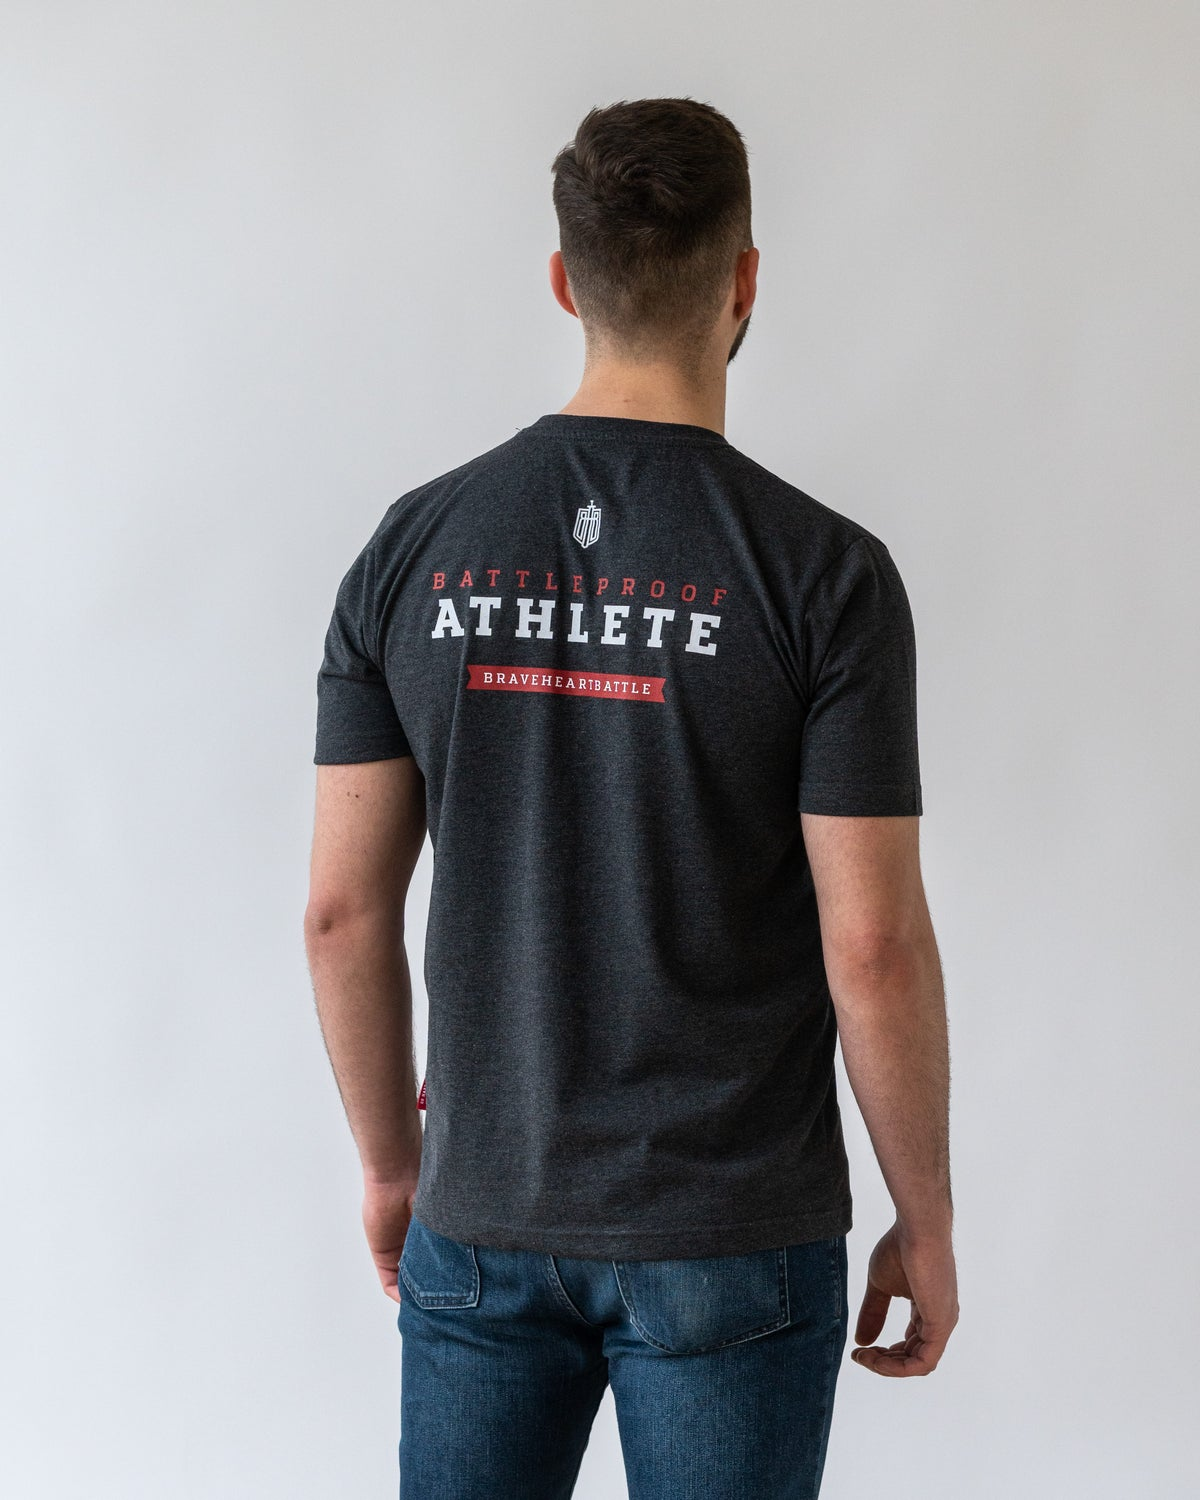 Image of BATTHLETE SHIRT 2020